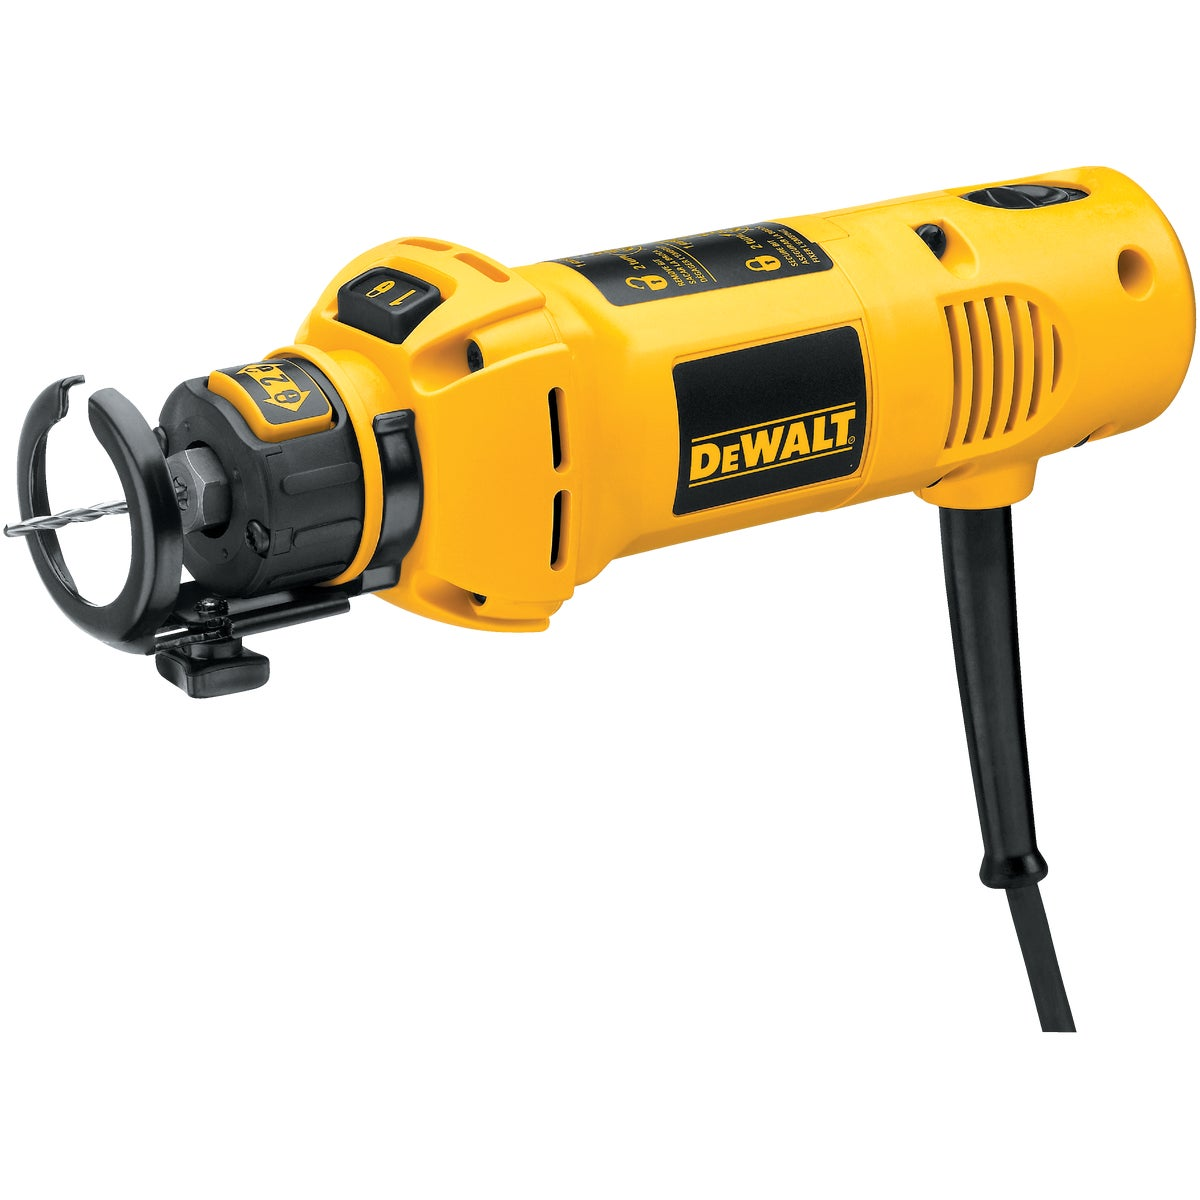 DRYWALL CUT-OUT SAW - DW660 by DeWalt